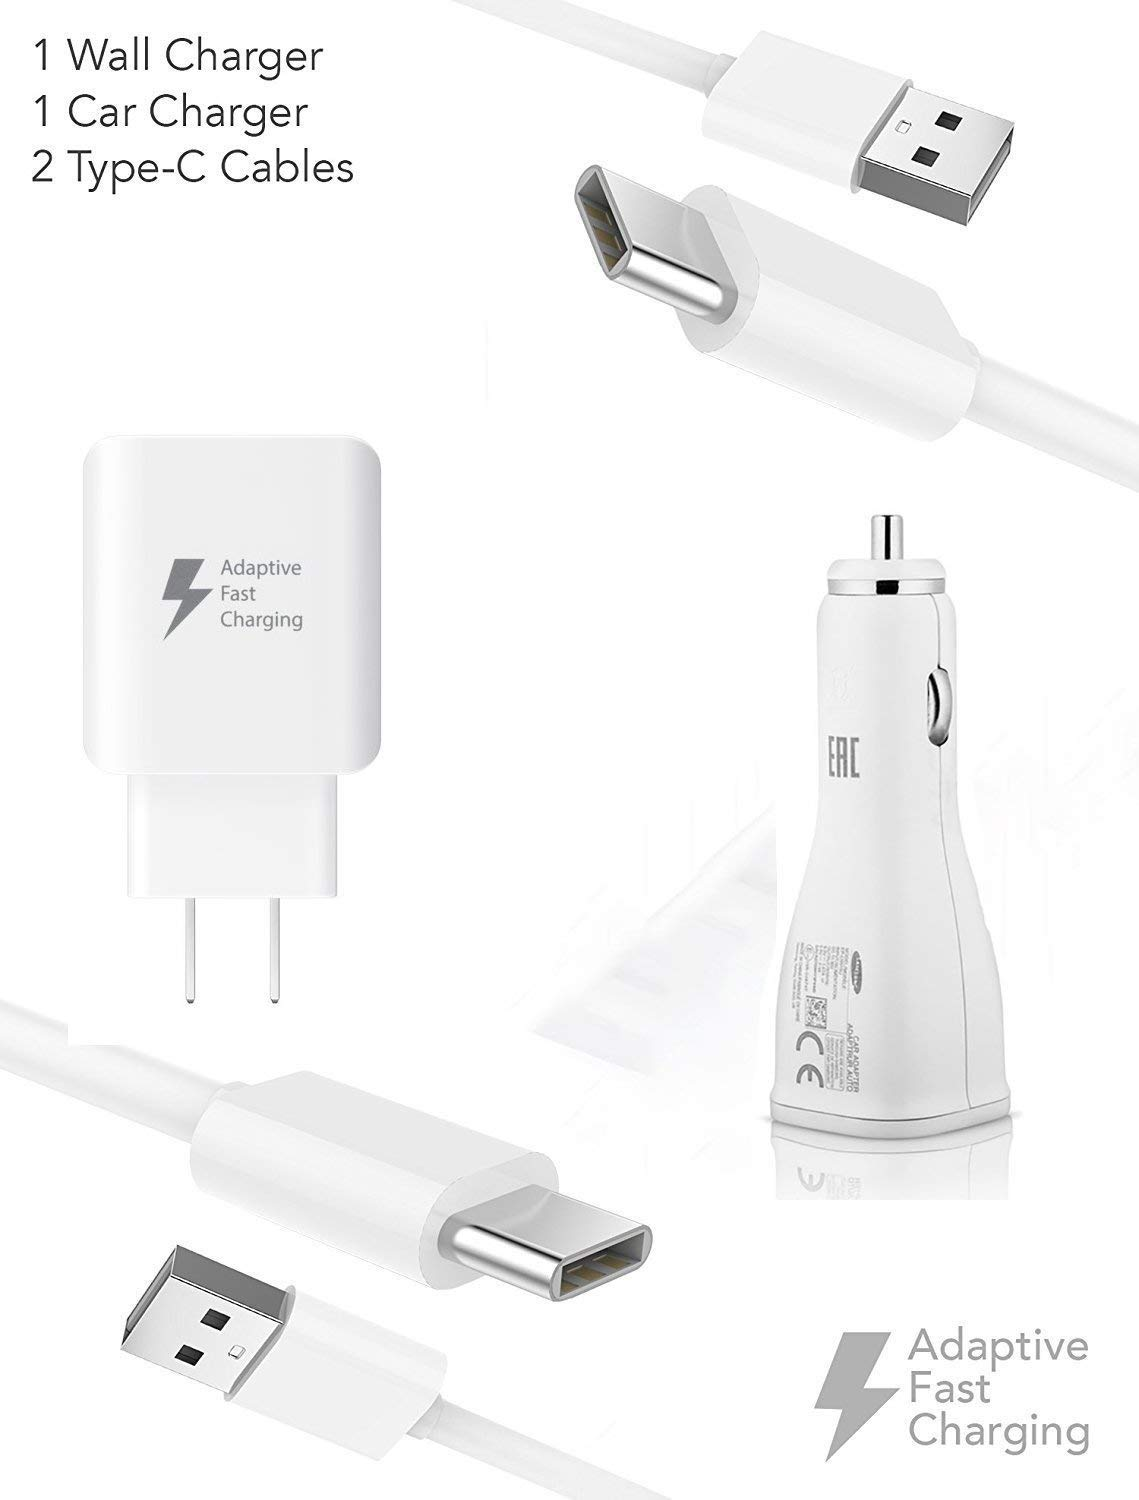 Quick Adaptive Turbo 18W Wall & Car Dual-Port USB Kit Works for Alcatel 7 with (2) USB Type-C Cables!